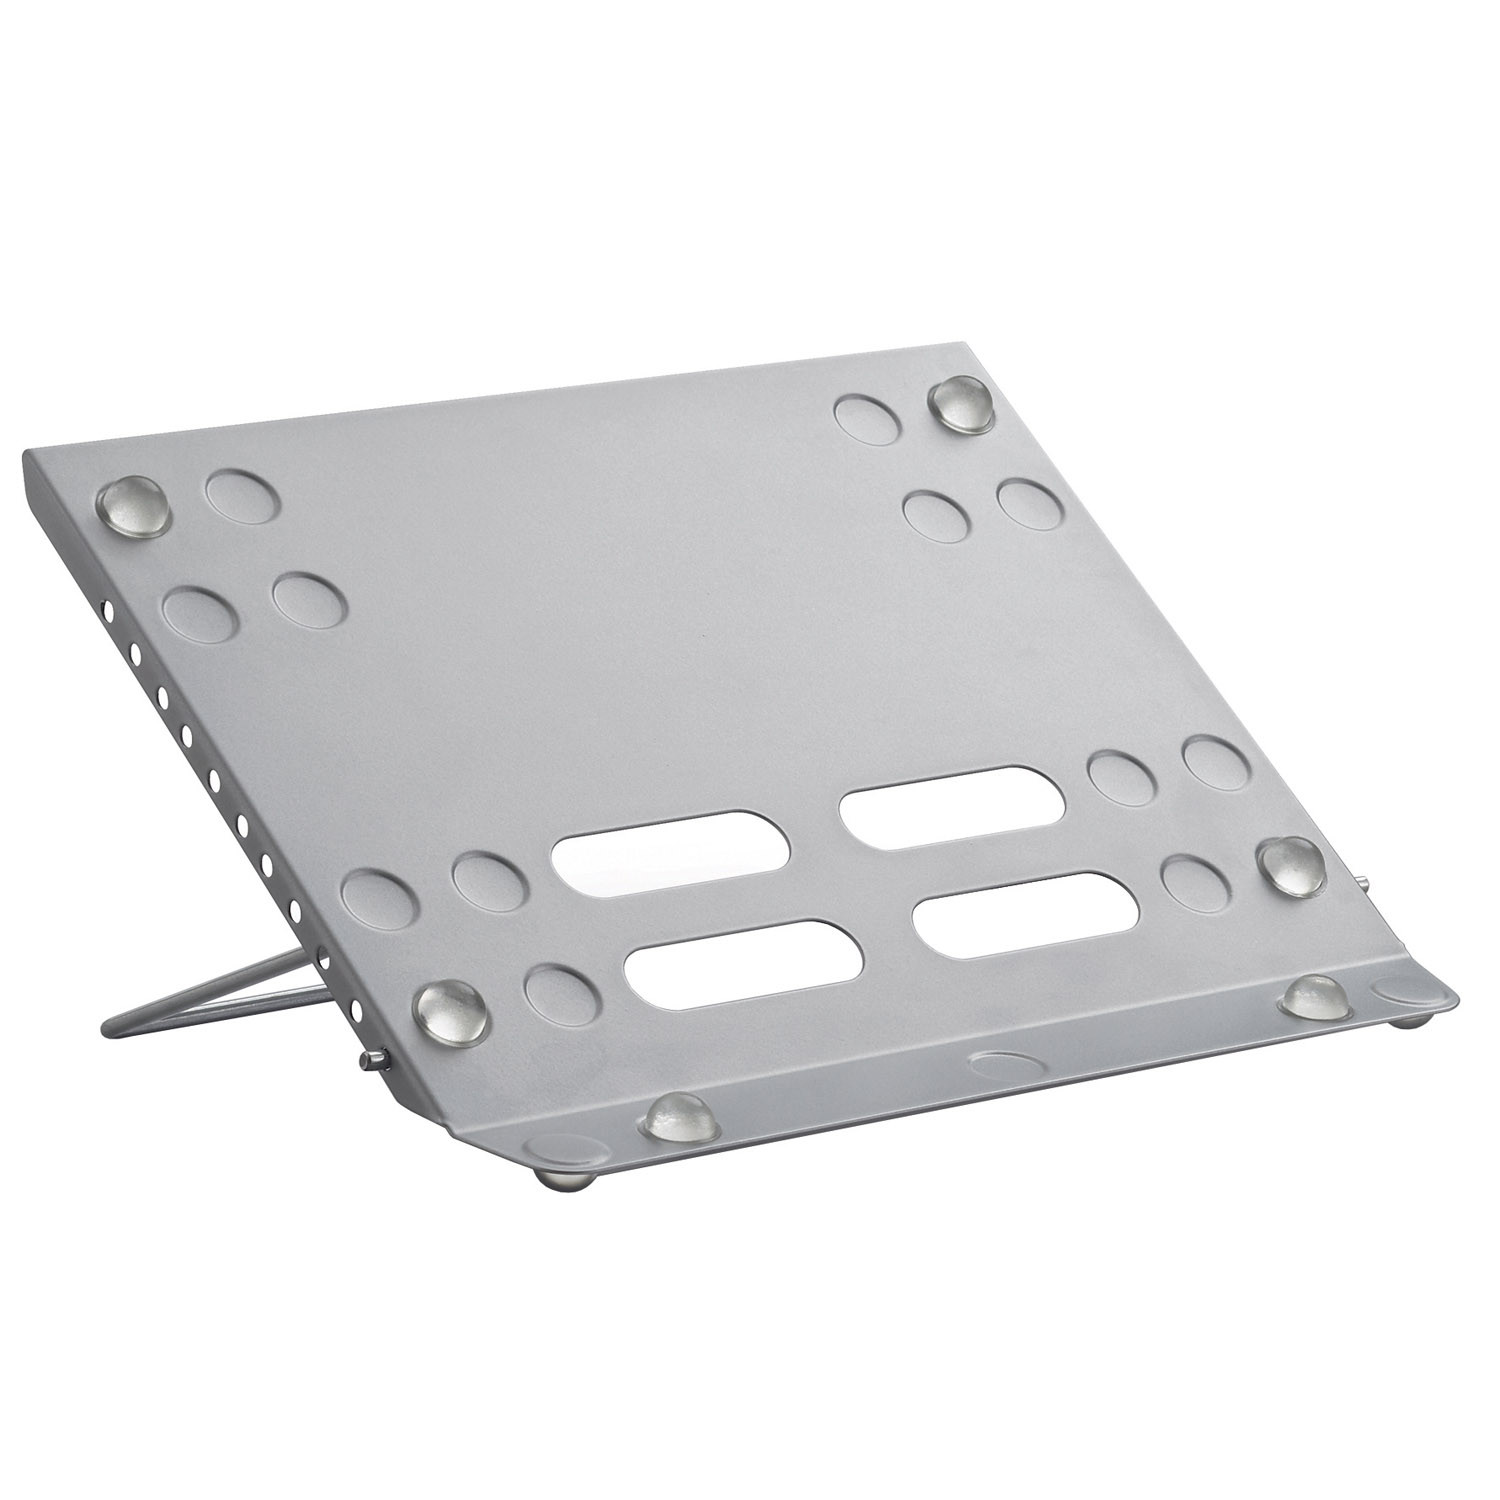 Lapsup Laptop Stand Underside